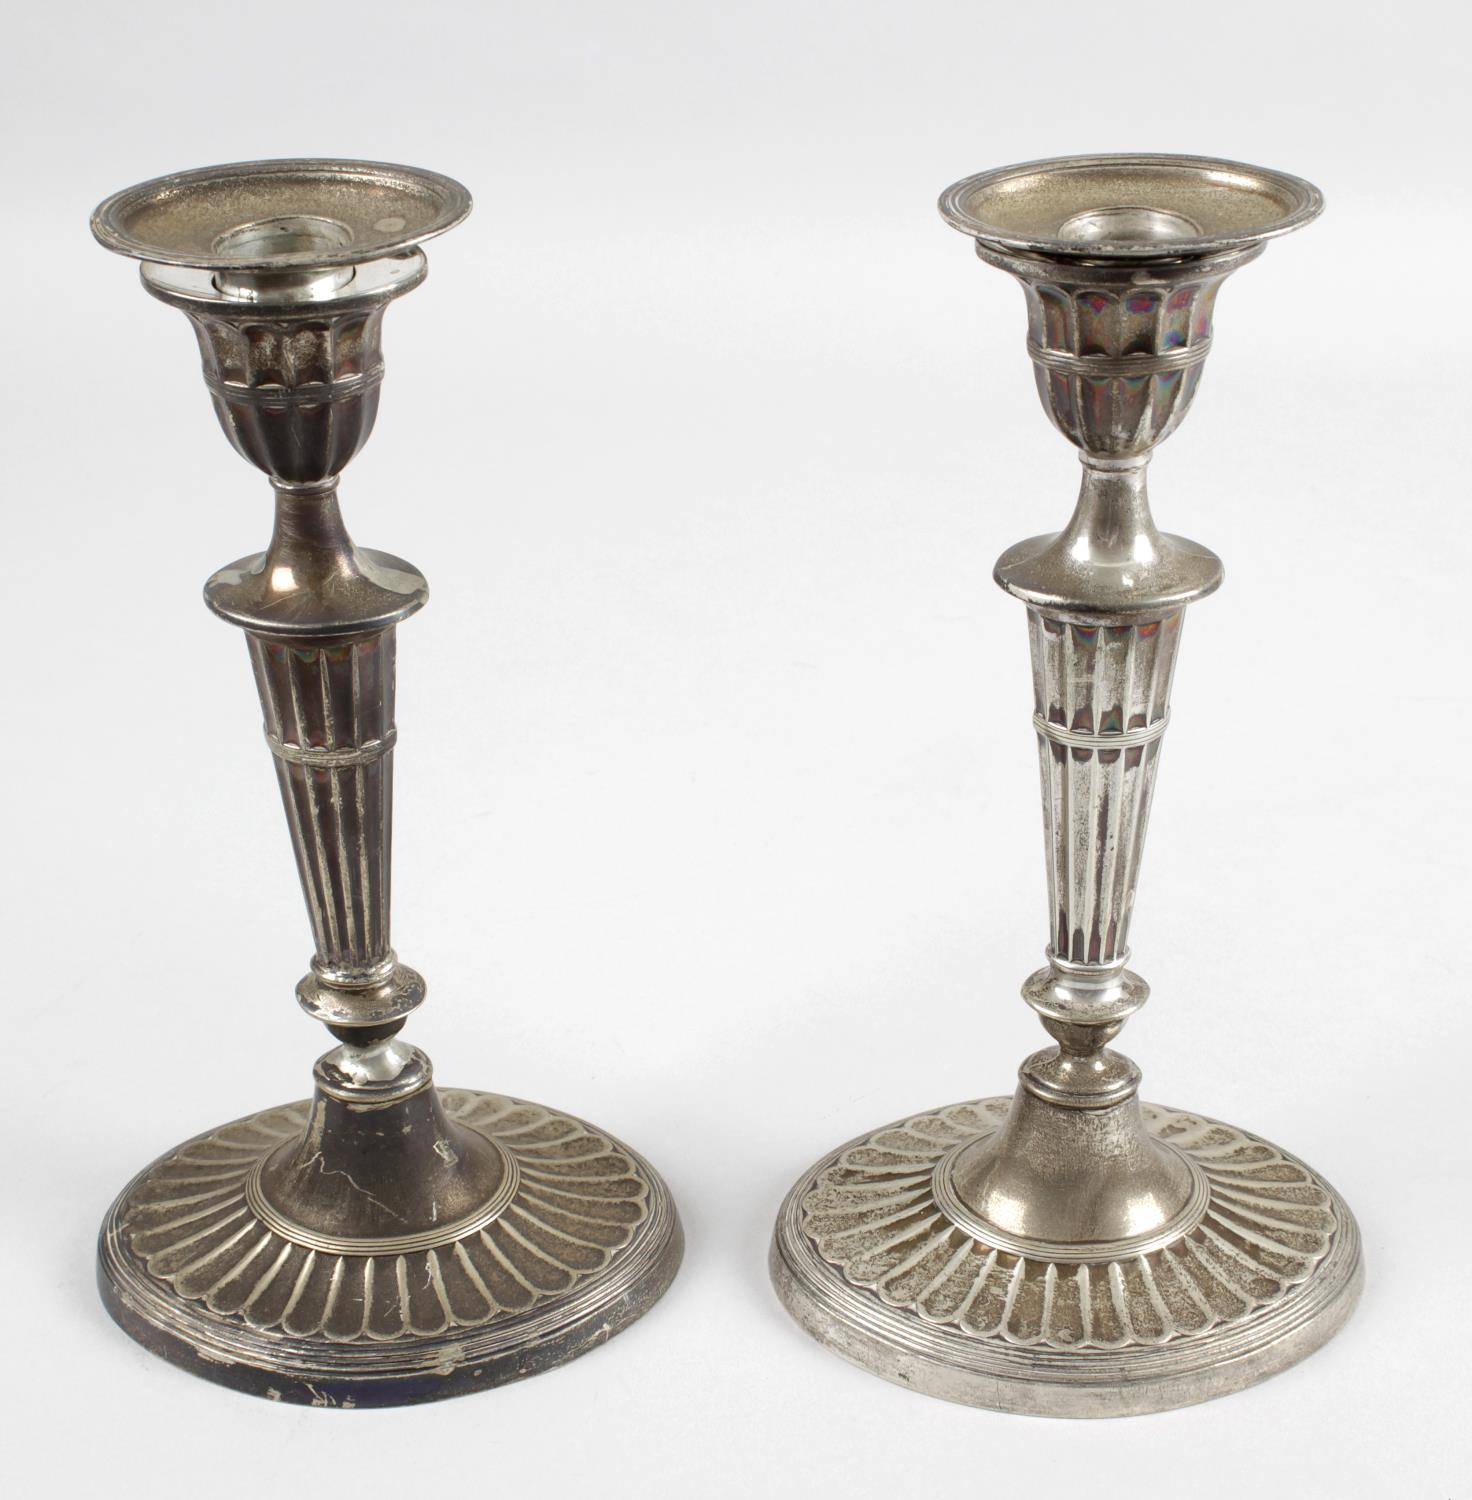 A pair of Edwardian silver mounted candlesticks,